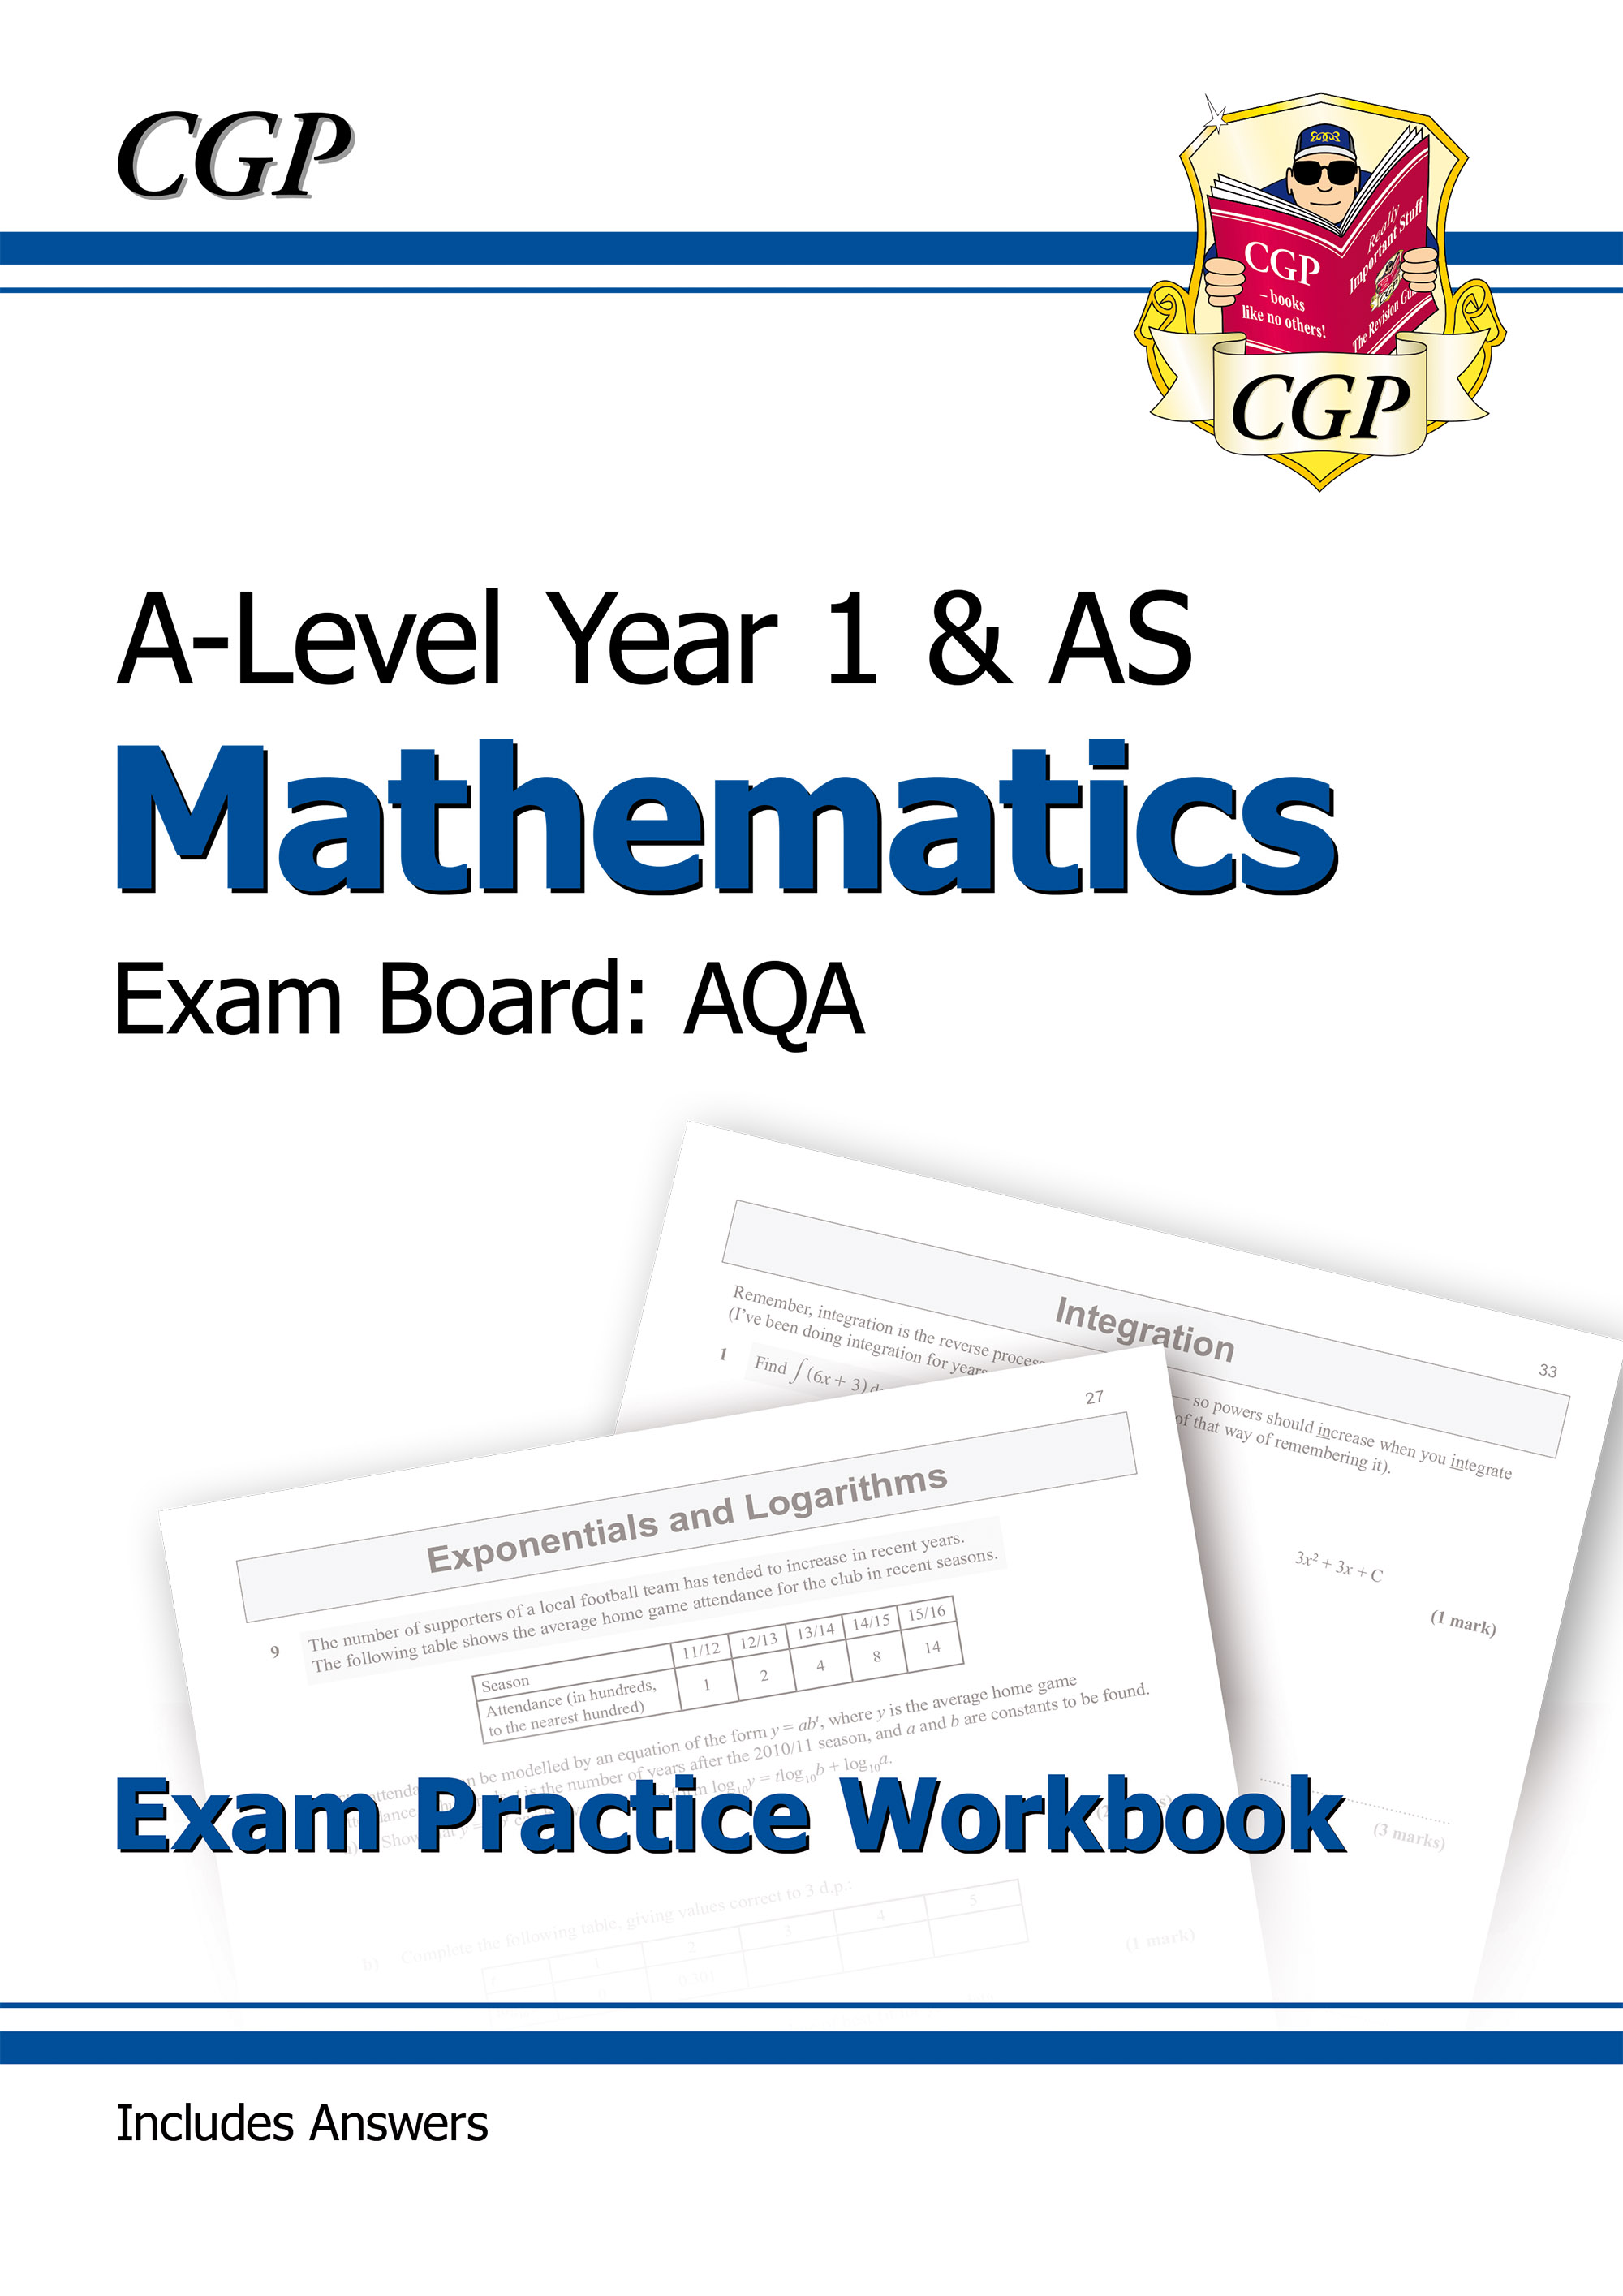 MAQ51DK - New A-Level Maths for AQA: Year 1 & AS Exam Practice Workbook